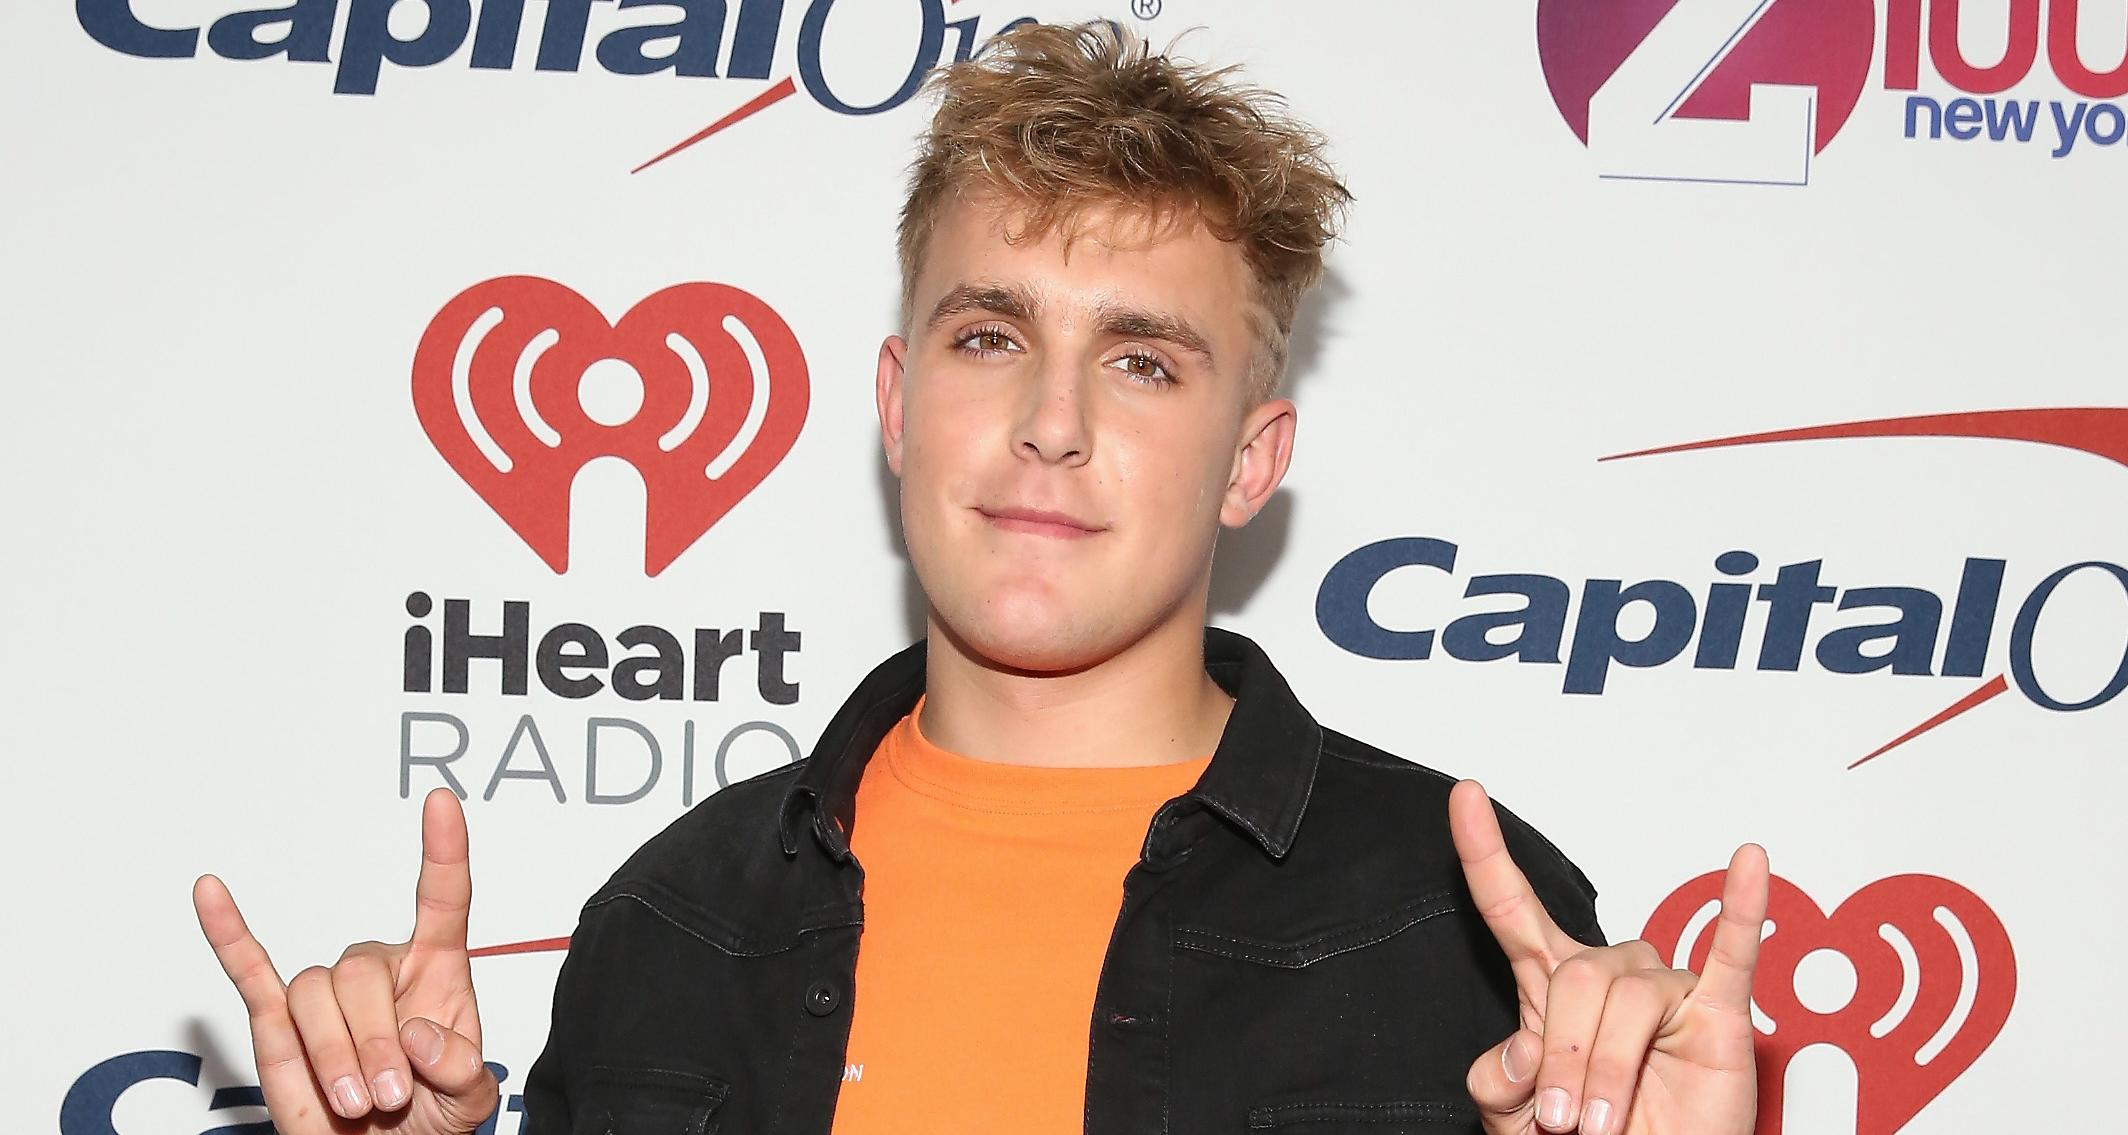 Jake Paul Controversies: Brief Timeline of His Screw-Ups